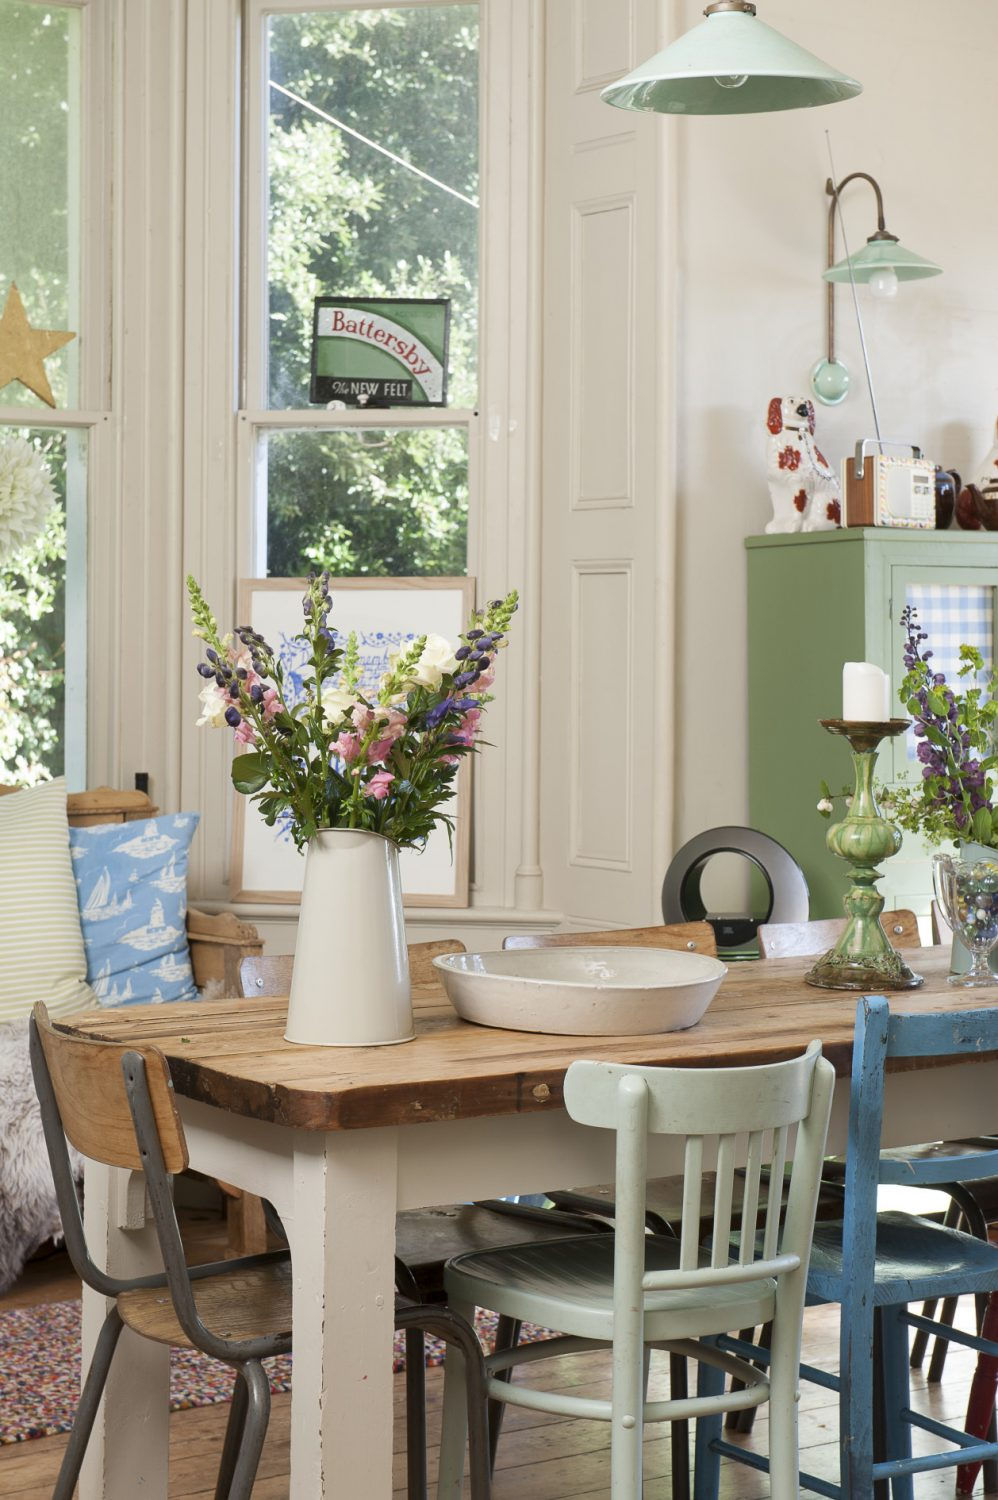 A verdigris coloured French rise and fall pulley light hangs from the very tall ceiling over a long, narrow, scrubbed wooden refectory table that has a collection of vintage school and bentwood chairs around it and a jug of simple English garden flowers at one end